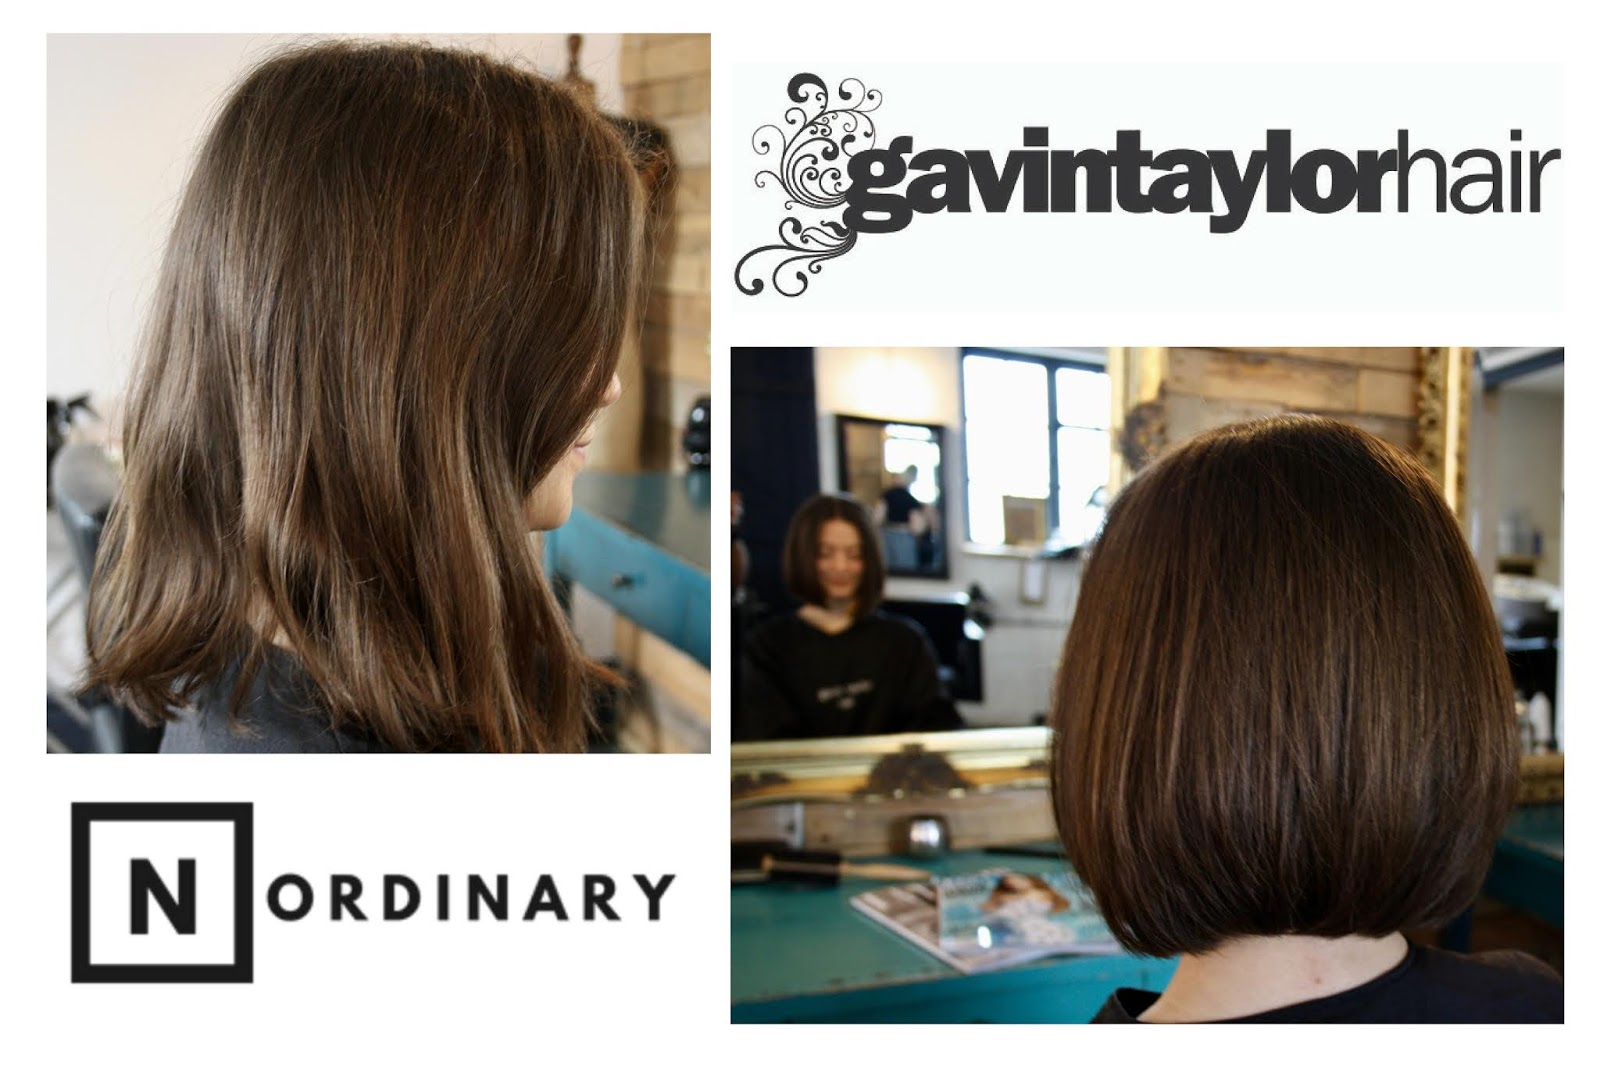 Abbey's before and after photos, showing her longer, unruly hair in the first image and shorter, sleeker hair in the second